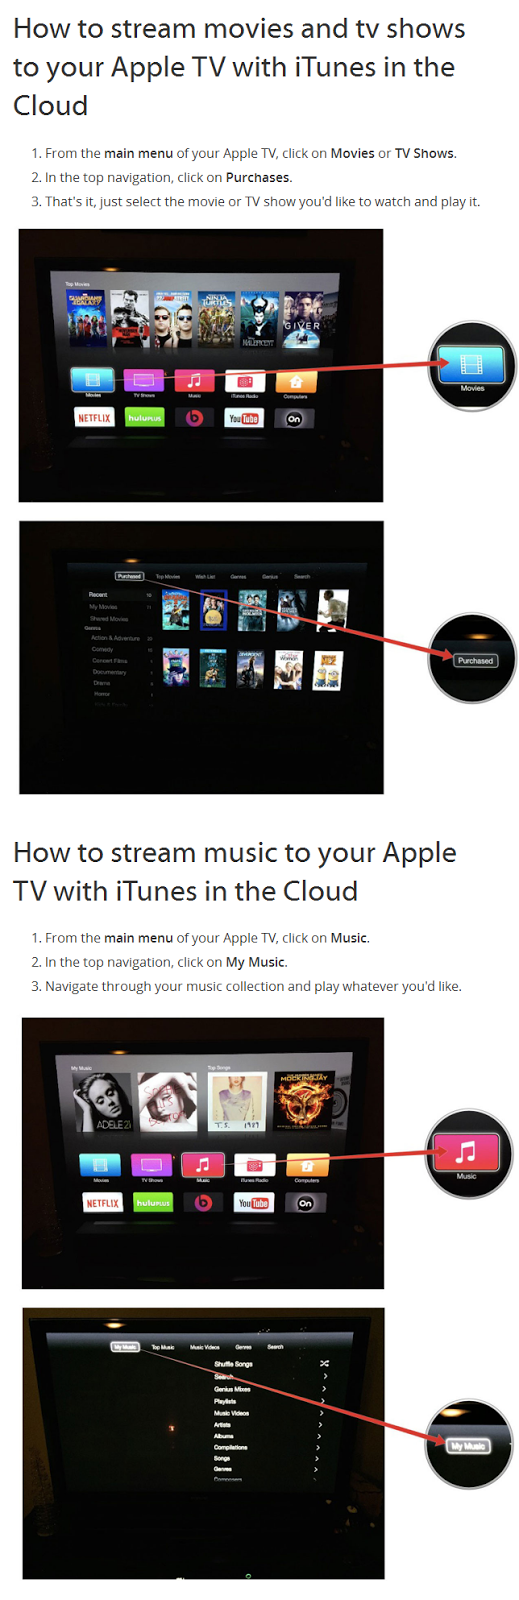 stream video from icloud to apple tv 4